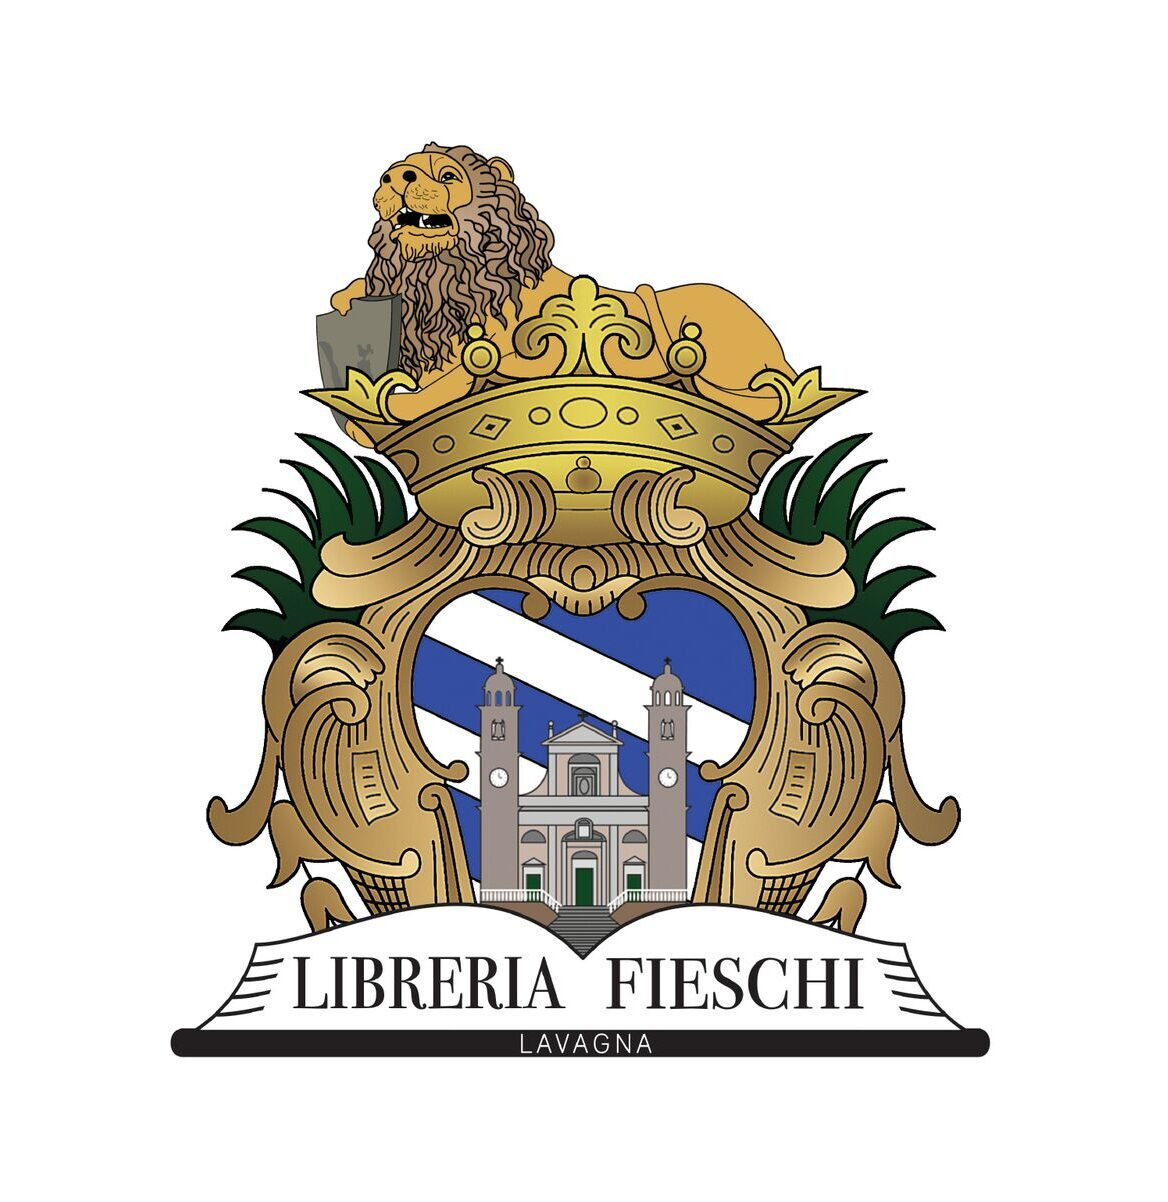 Buy Now: Libreria Fieschi (Amazon)